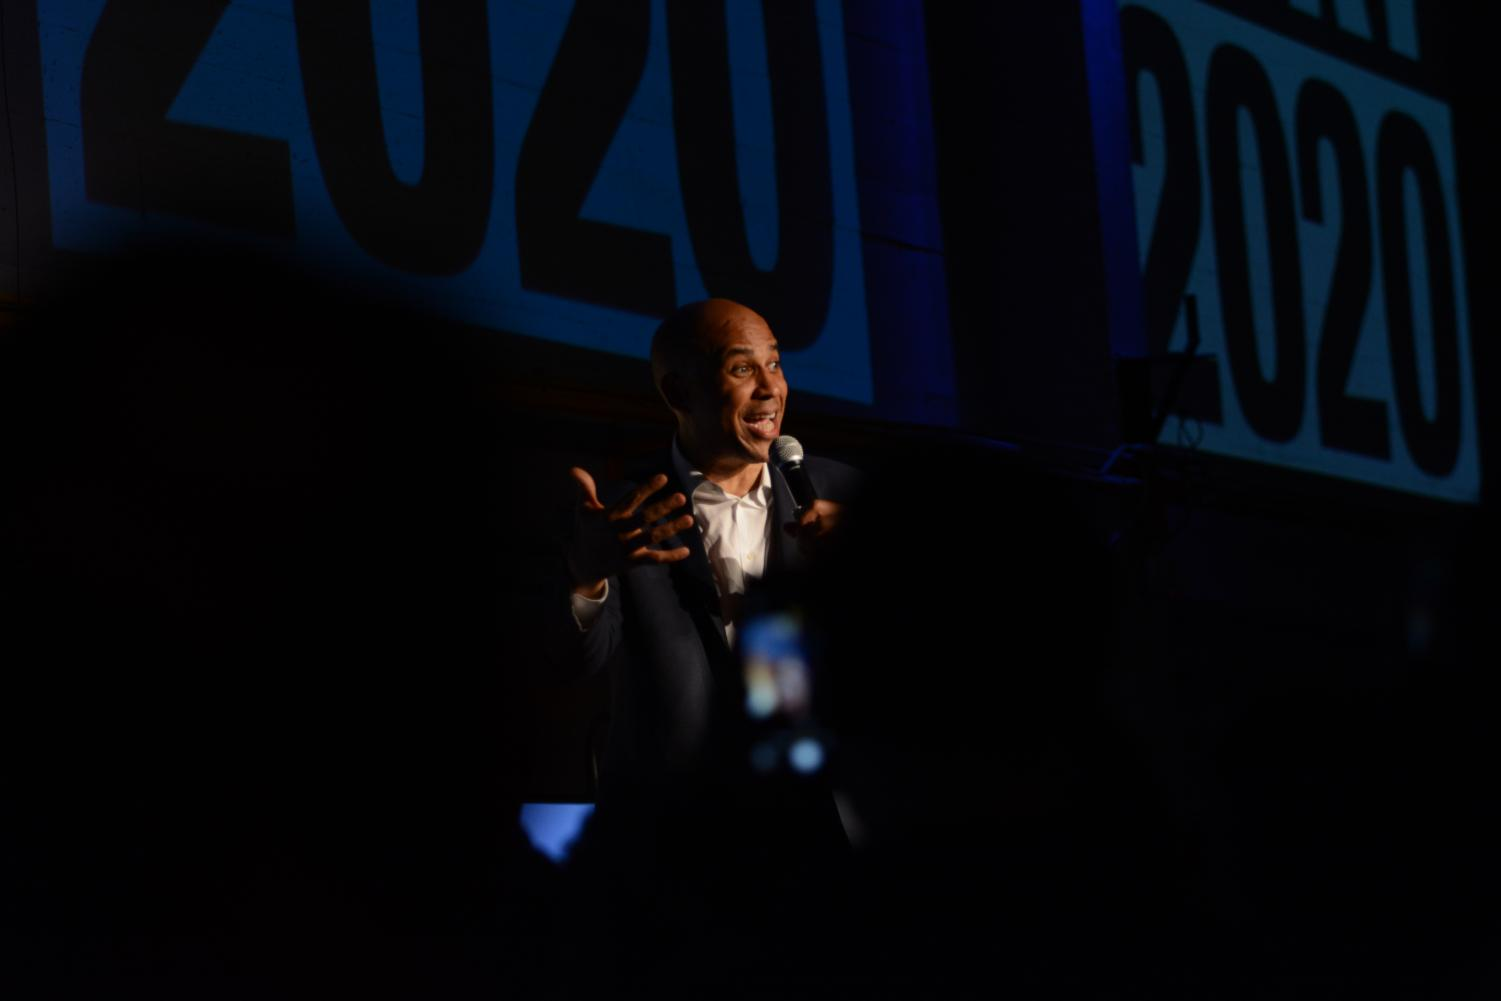 Democratic+presidential+candidate+and+New+Jersey+junior+senator+Cory+Booker+speaks+to+a+crowd+at+the+Folsom+Street+Foundry.+In+his+speech%2C+Booker+encouraged+the+audience+to+become+involved+in+solving+the+issues+at+hand%2C+including+gun+control+and+underpaid+workers.